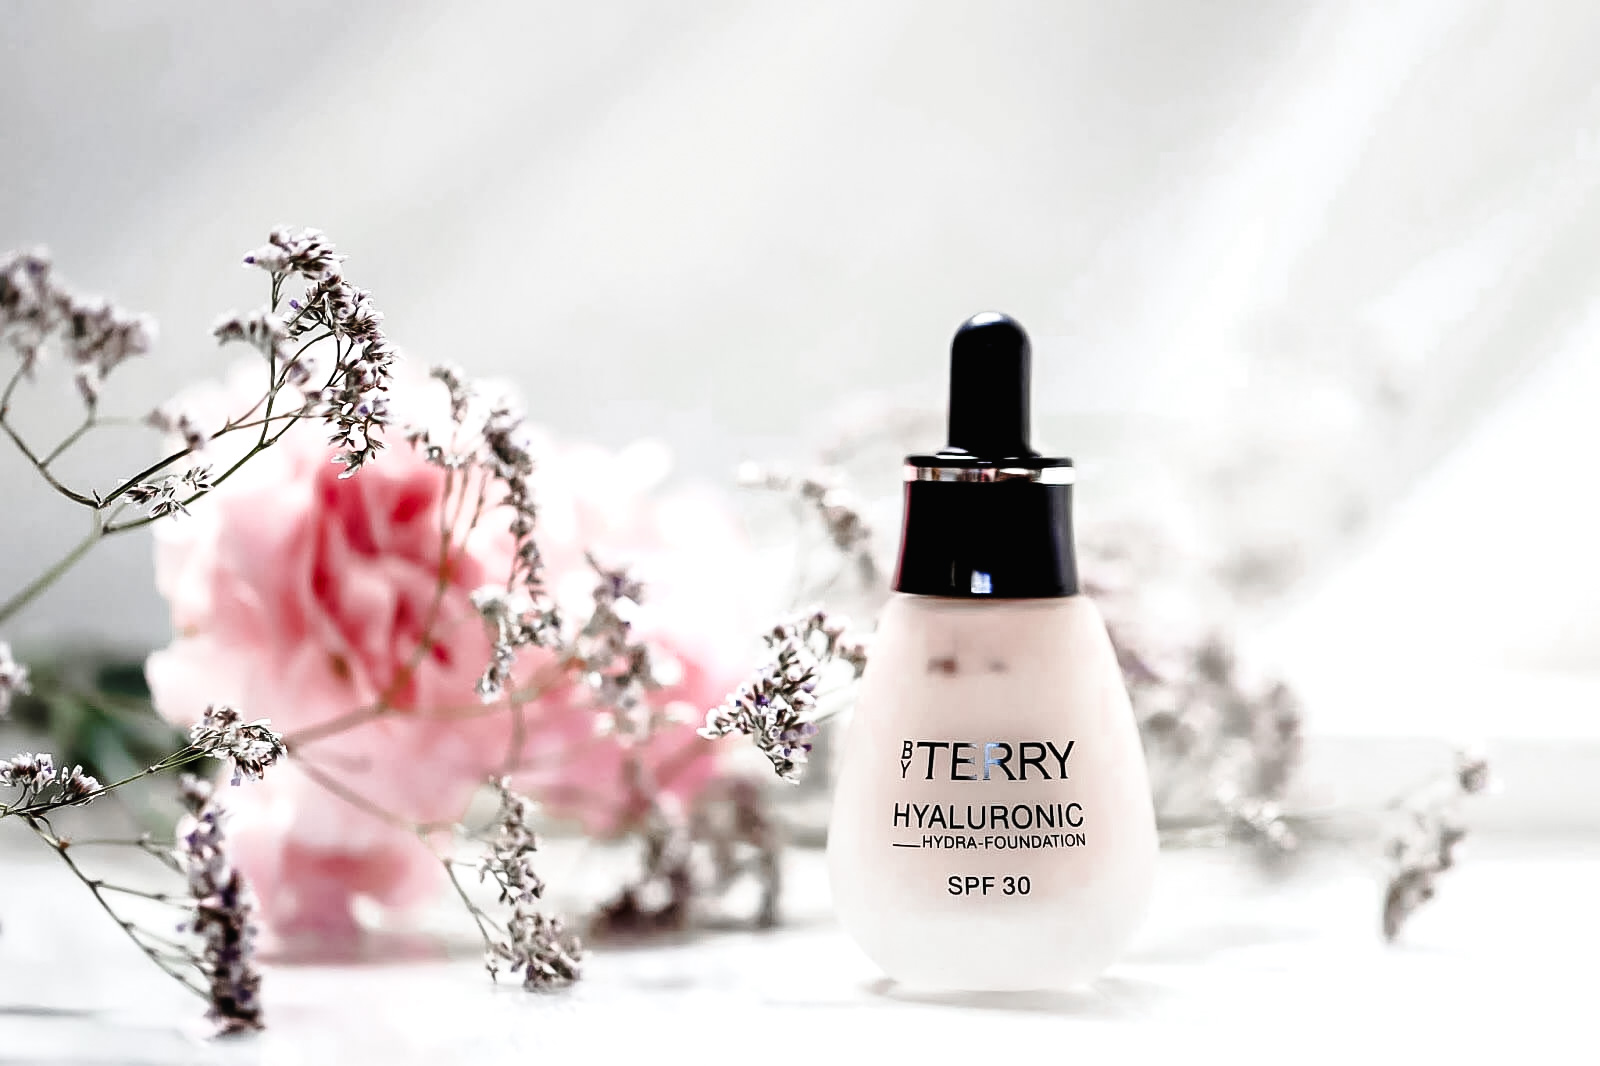 By Terry Hyaluronic Hydra Foundation fond de teint hydratant